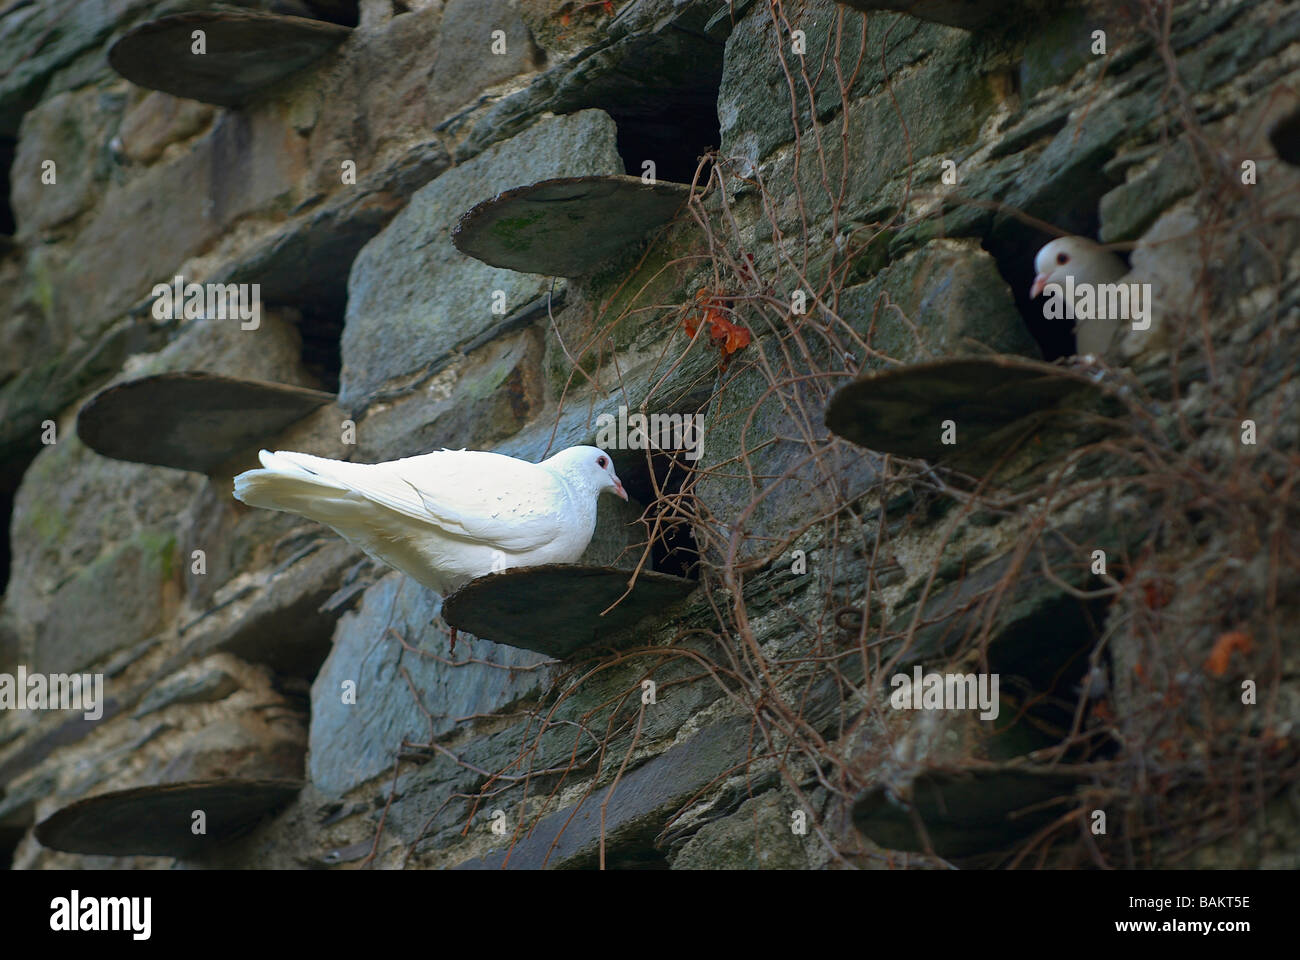 Birds sheltering in a brick wall - Stock Image